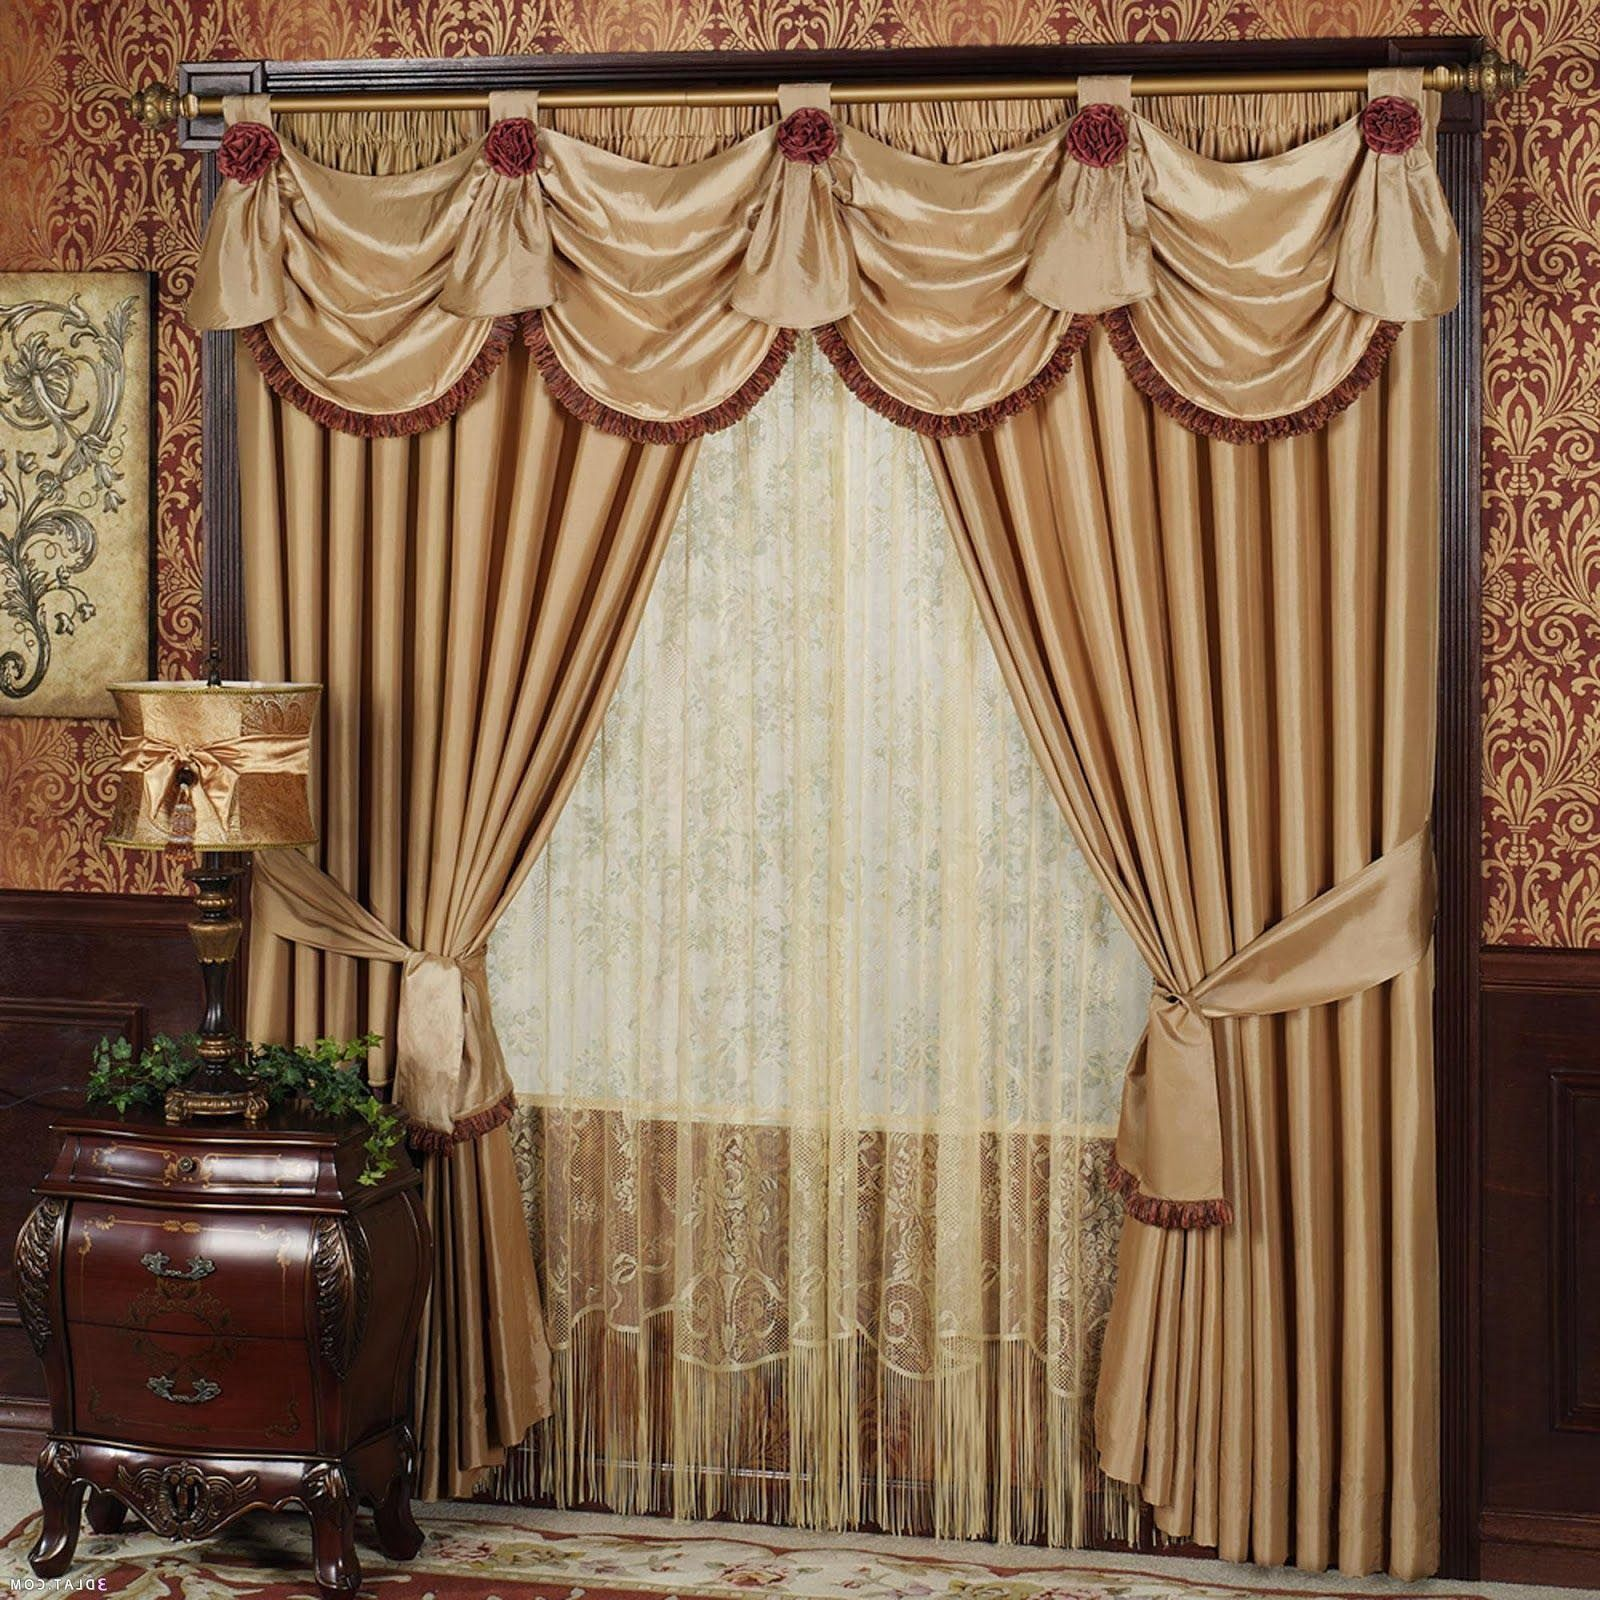 Living Room Curtain Design Cool Living Room Drapes With Valances  Valances  Pinterest  Valance Review